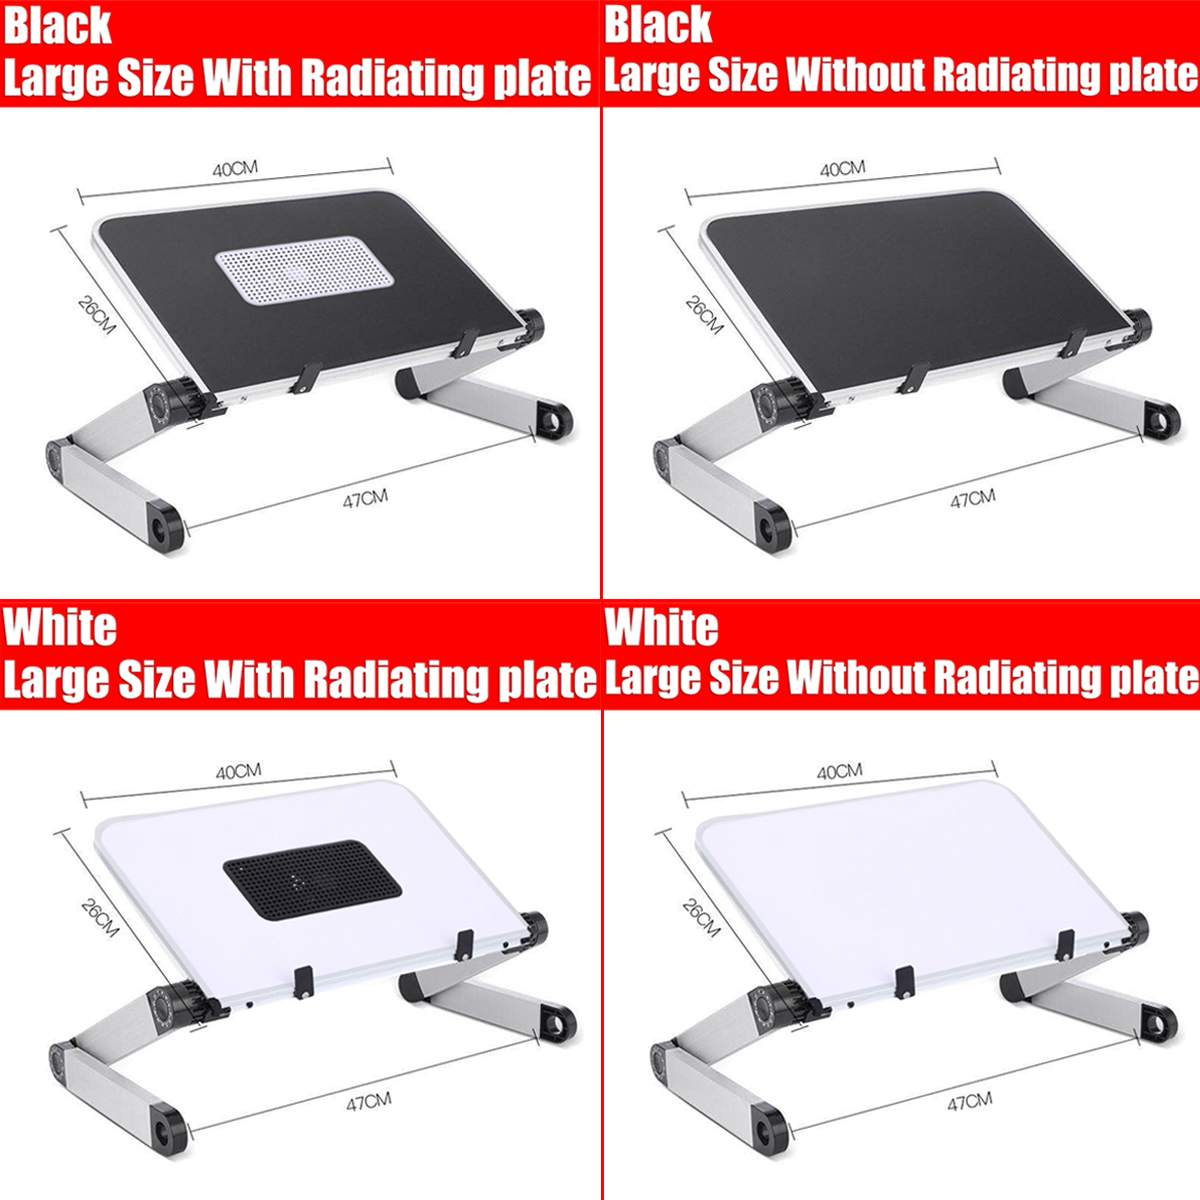 Big Portable Foldable Adjustable Folding Table For Laptop Desk Computer Mesa Para Notebook Stand Tray For Sofa Bed Black White